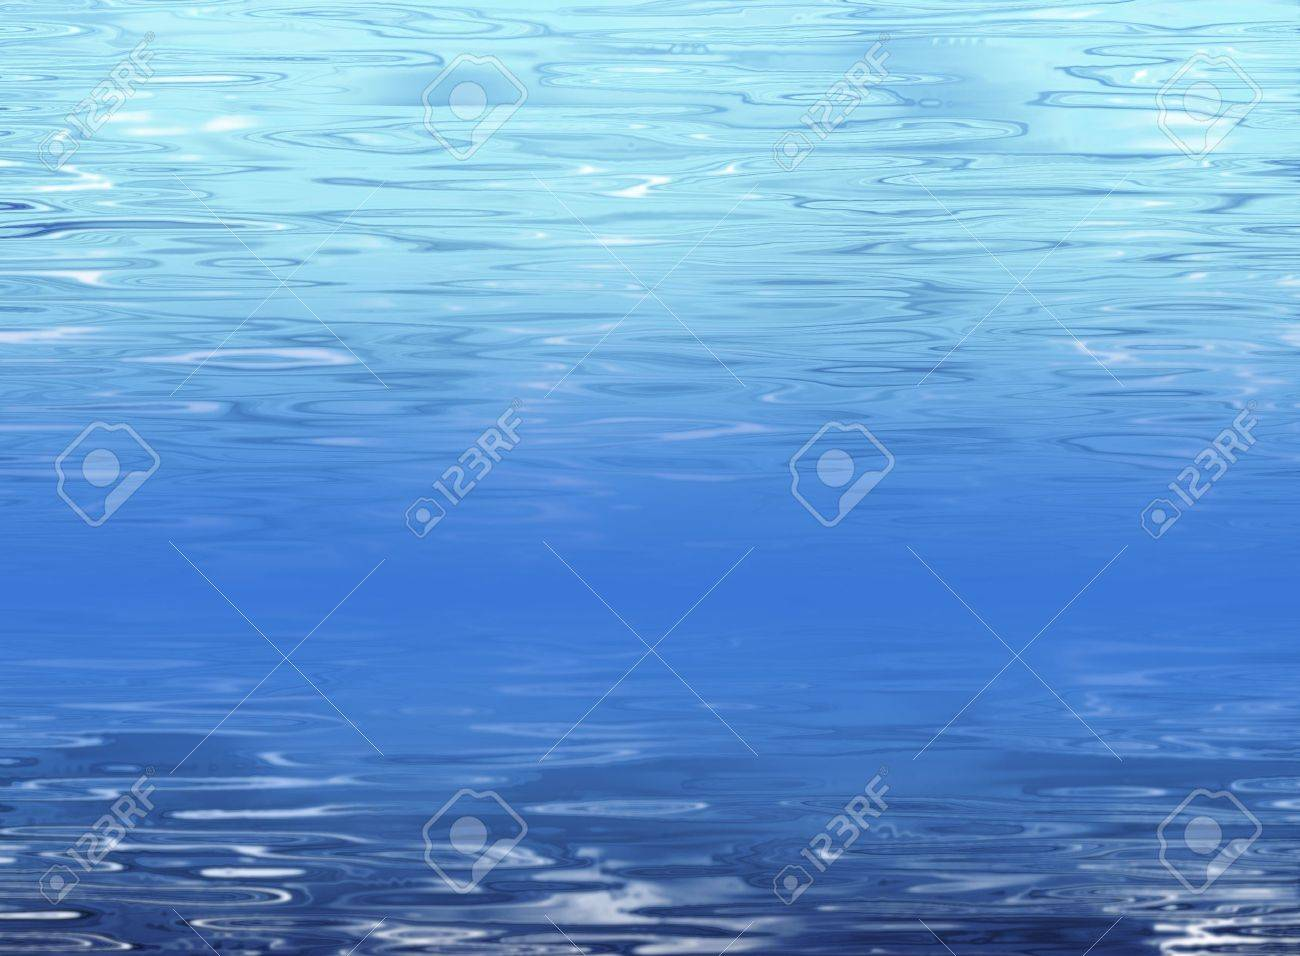 Abstract Submarine Background   Clear Fresh Water With Seabed 1300x956